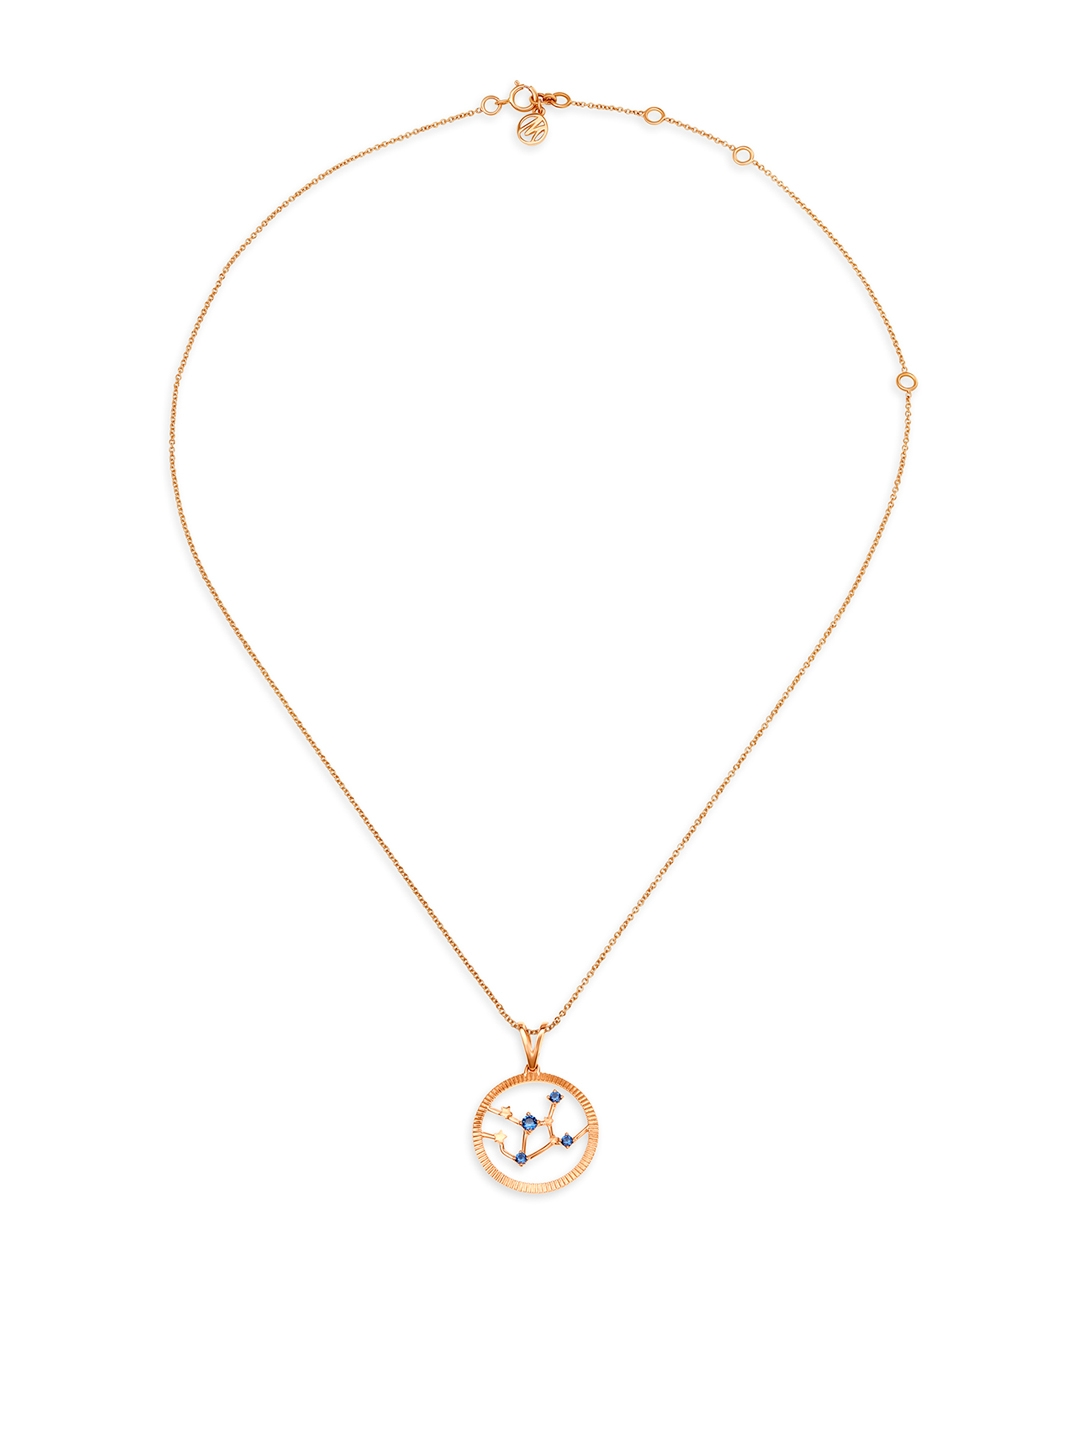 Mia by Tanishq Virgo 14KT Rose Gold Pendant and Chain